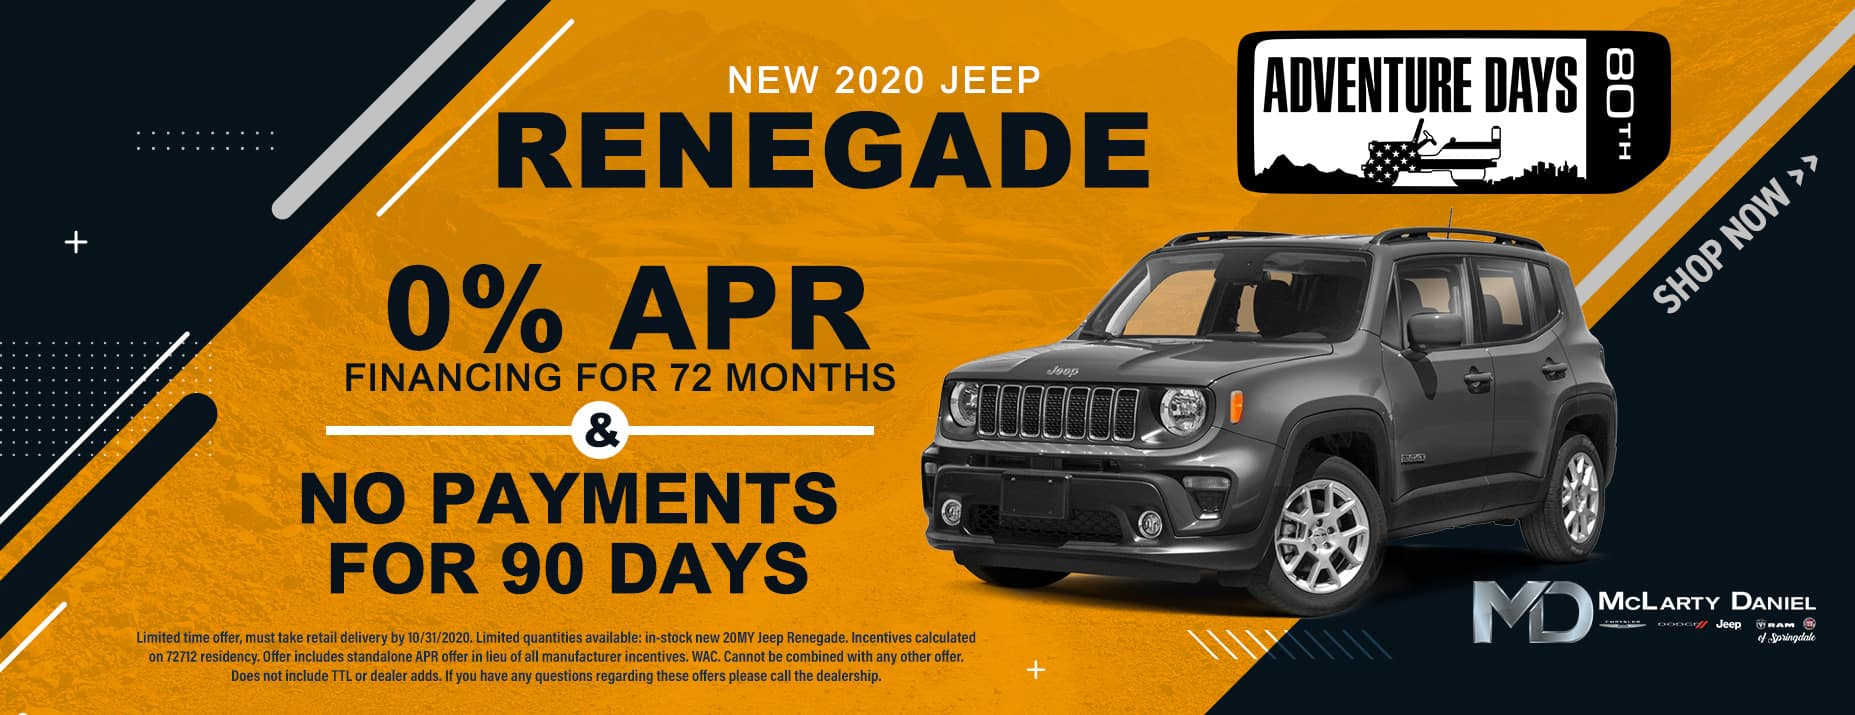 0% APR for 72 months and NO PAYMENTS FOR 90 DAYS available on 2020 Jeep Renegade!